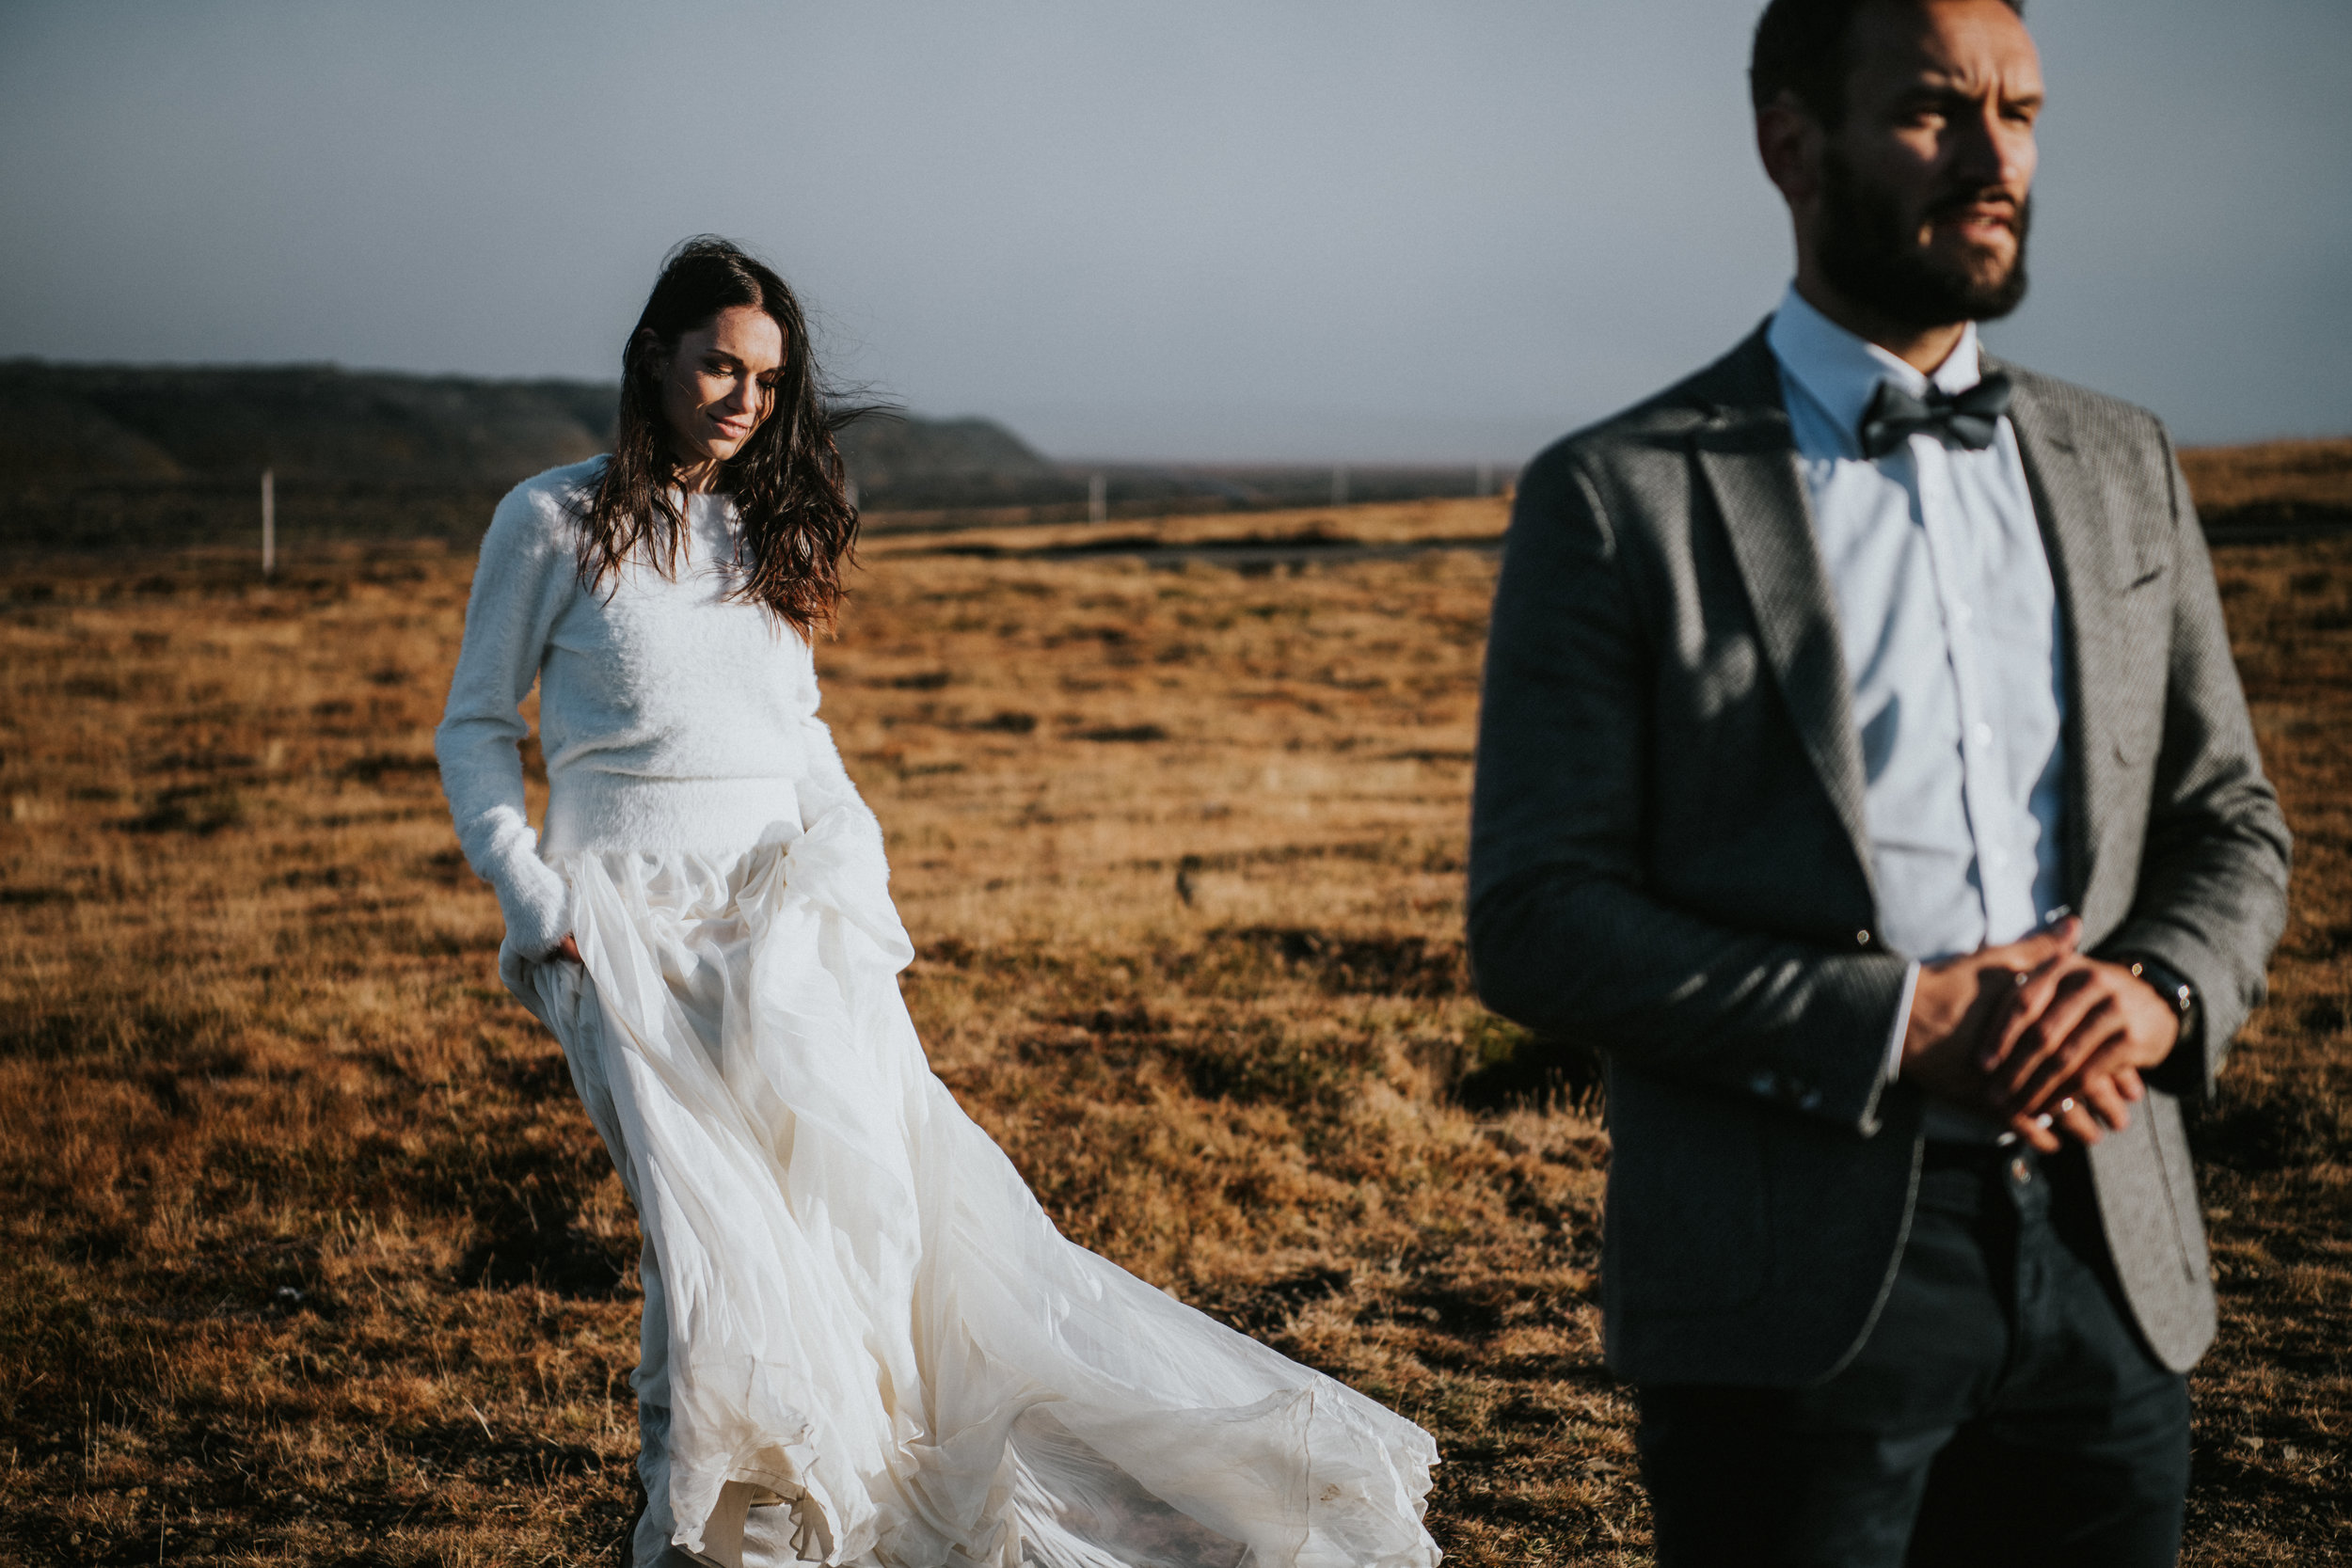 Natalie-Vitaly-Iceland-Elopement-Photographer-Videographer-25